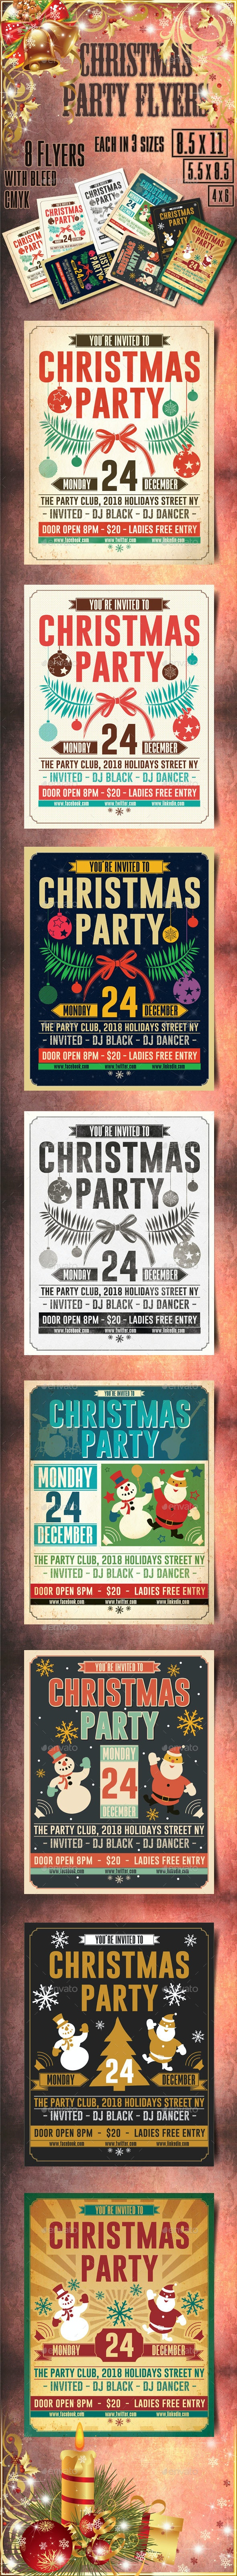 Christmas Retro Party Flyer - Holidays Events